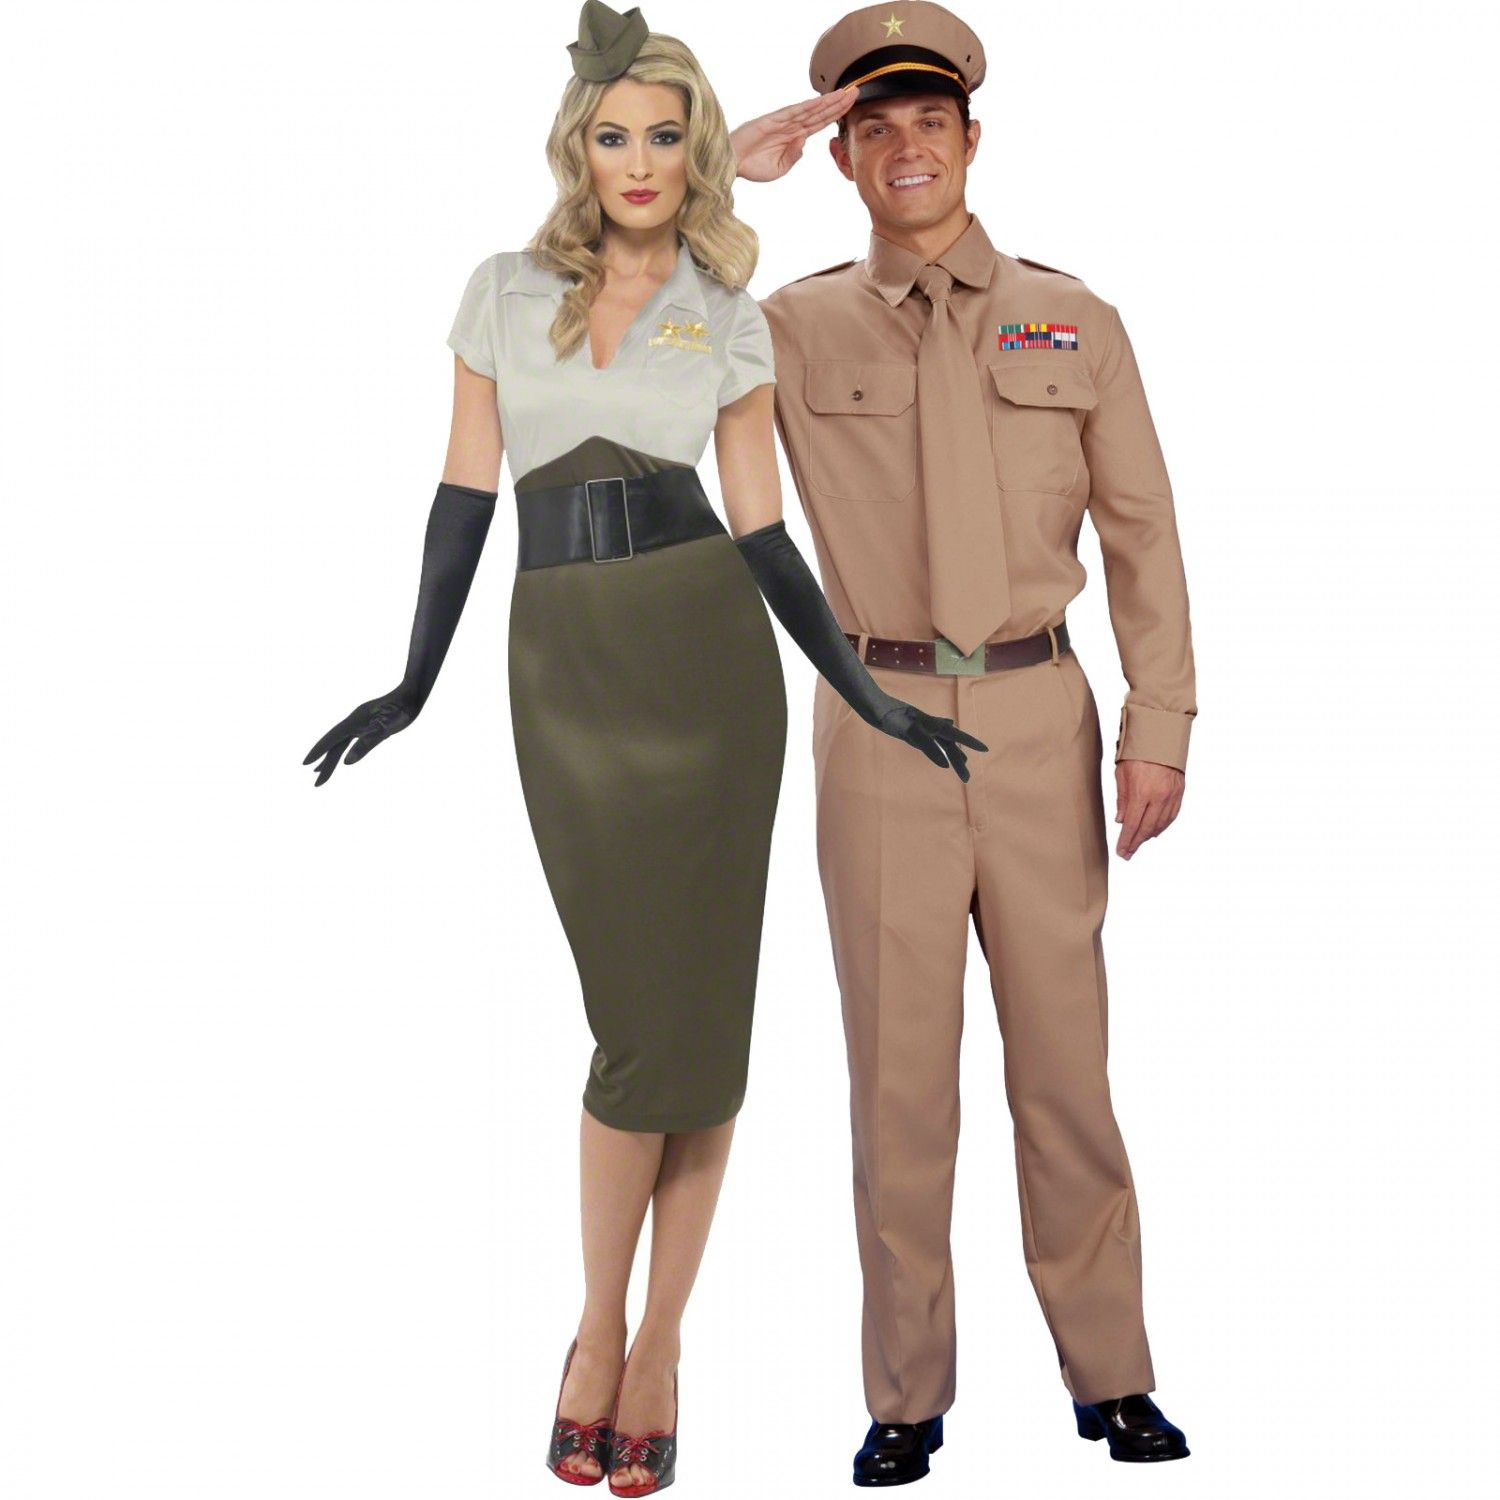 d04f21ec7ac Army General Adult Shirt and Tie and WW2 Army Pin Up Spice Darling ...